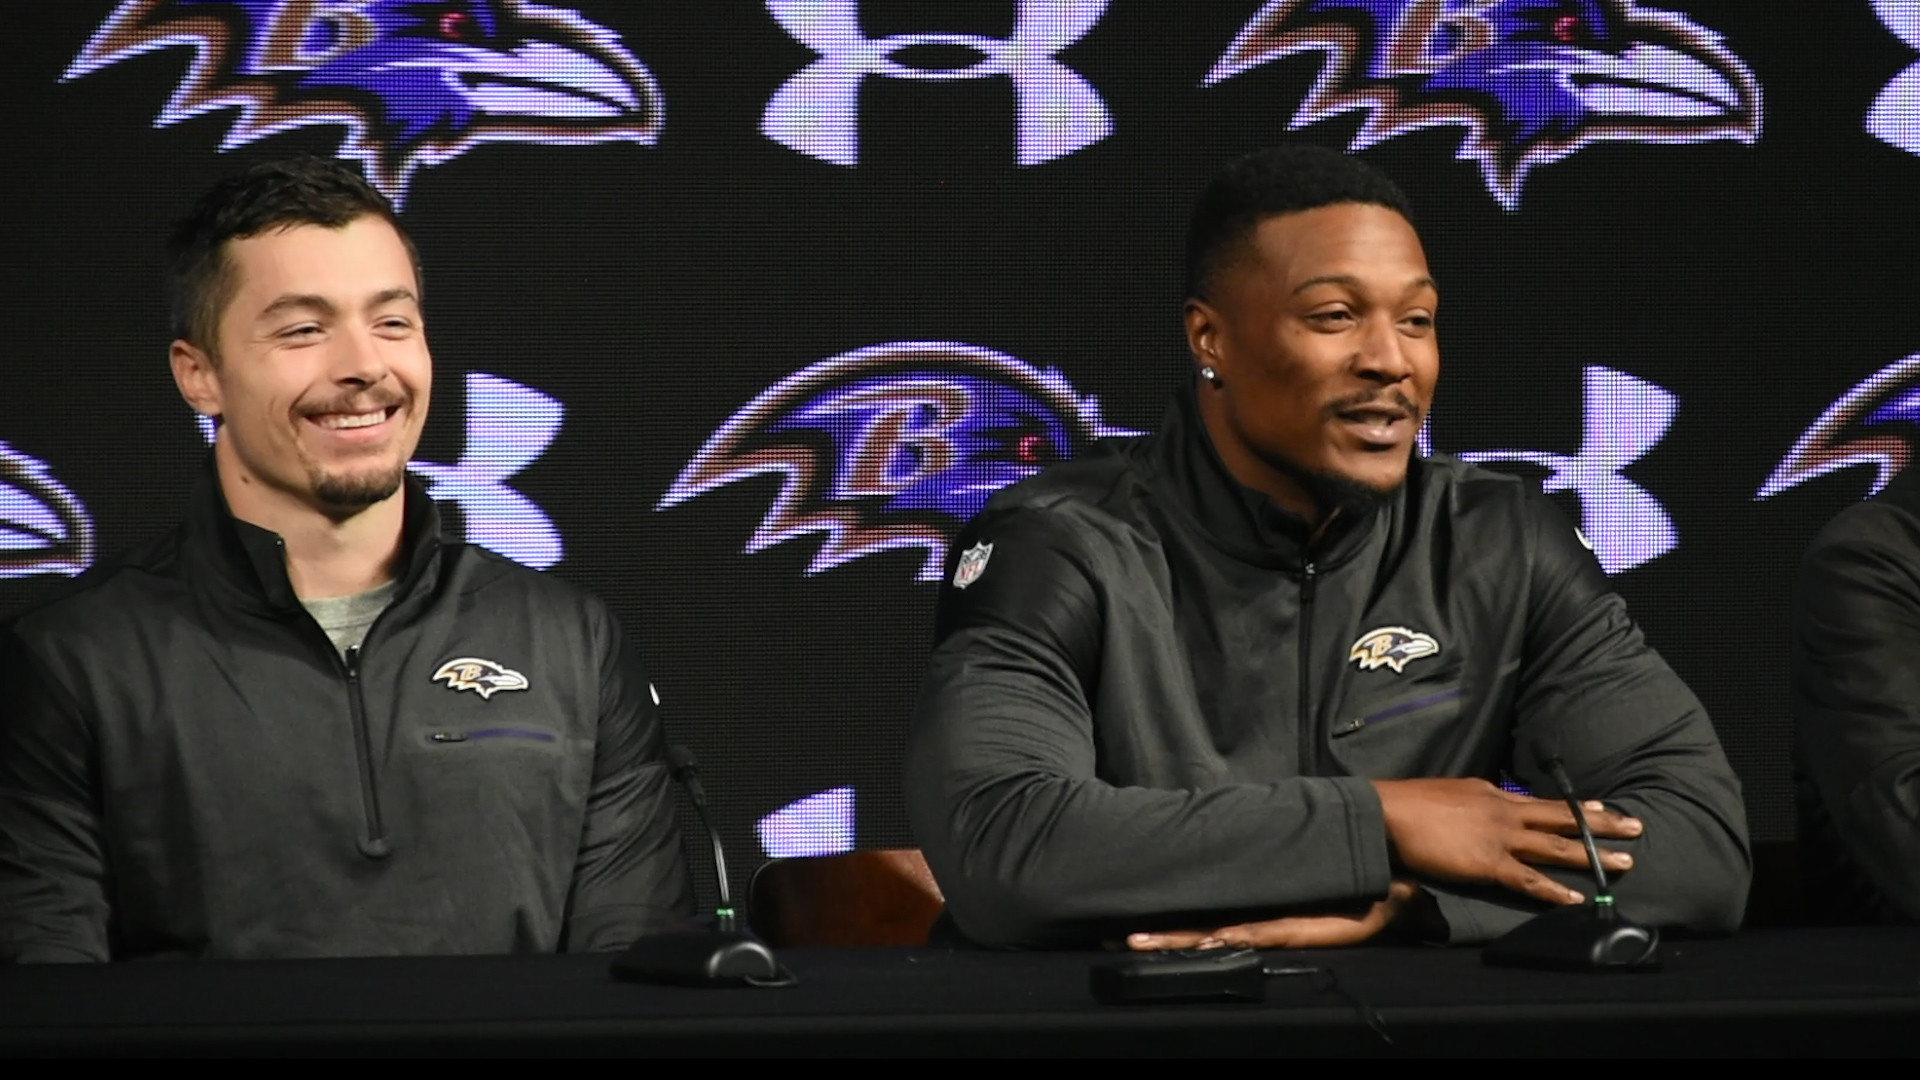 Jefferson and fellow Ravens acquisition Danny Woodhead meet the Baltimore press.     (alternate caption: Two hostages talk to their rescuers for the first time since liberation)